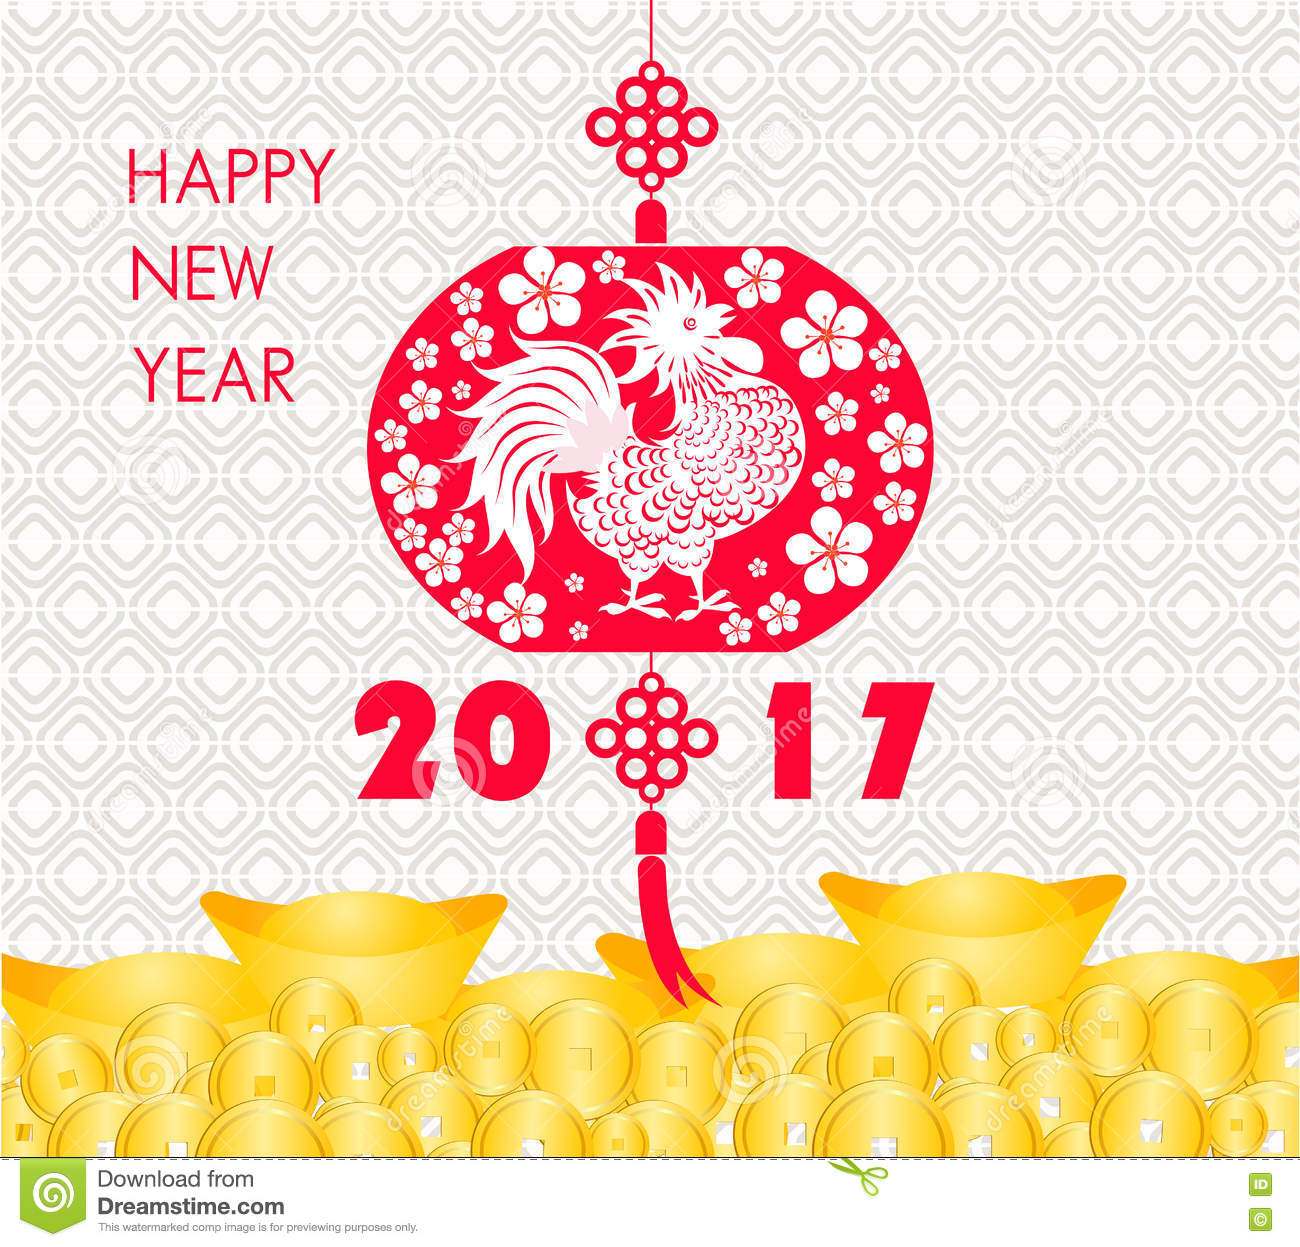 Happy chinese new year 2017 card is gold coins money lanterns plum download happy chinese new year 2017 card is gold coins money lanterns plum blossom m4hsunfo